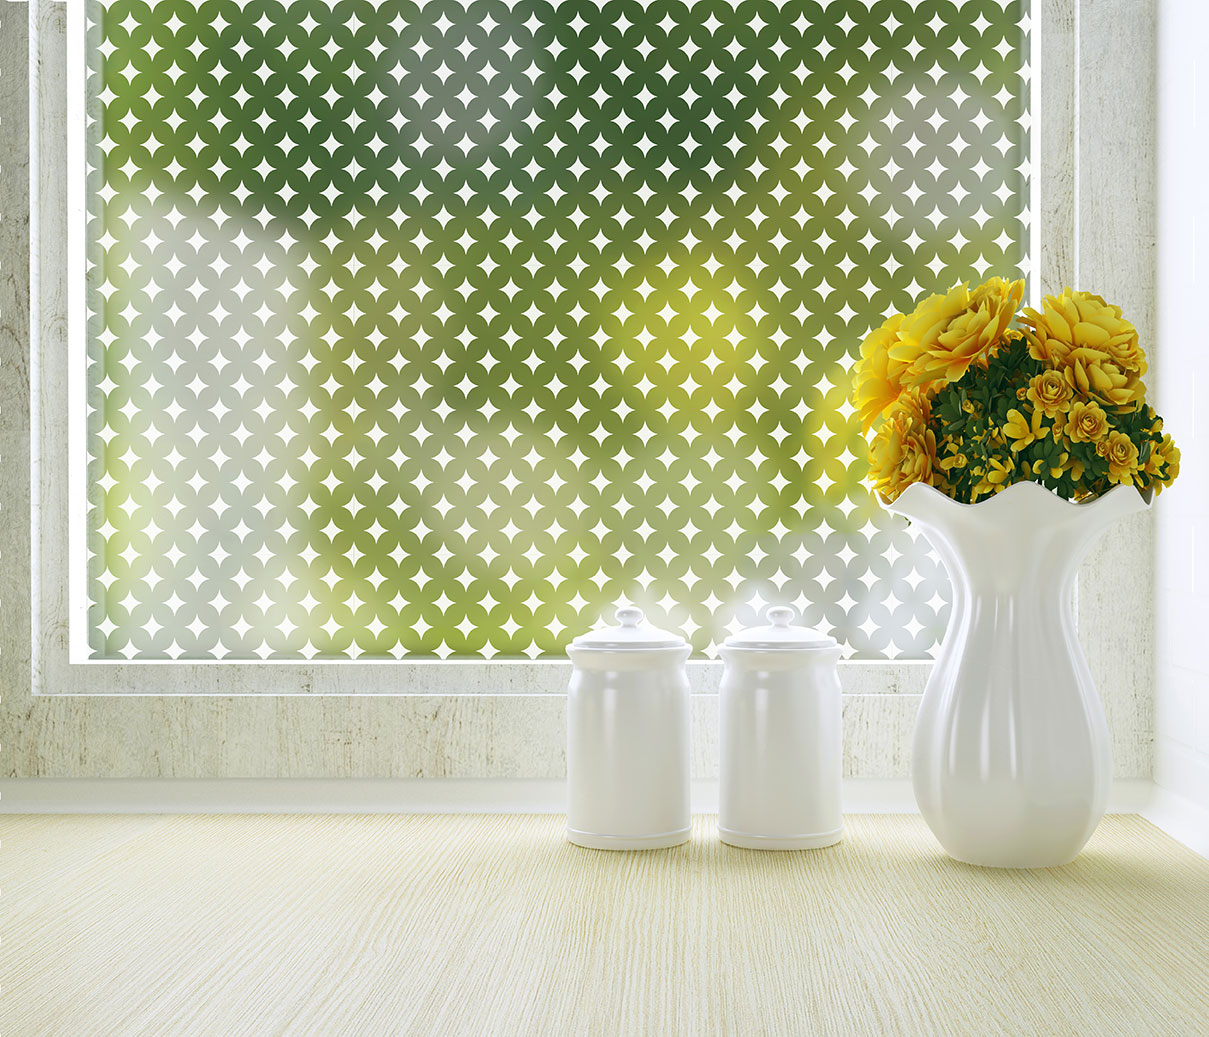 Diamonds Privacy Film